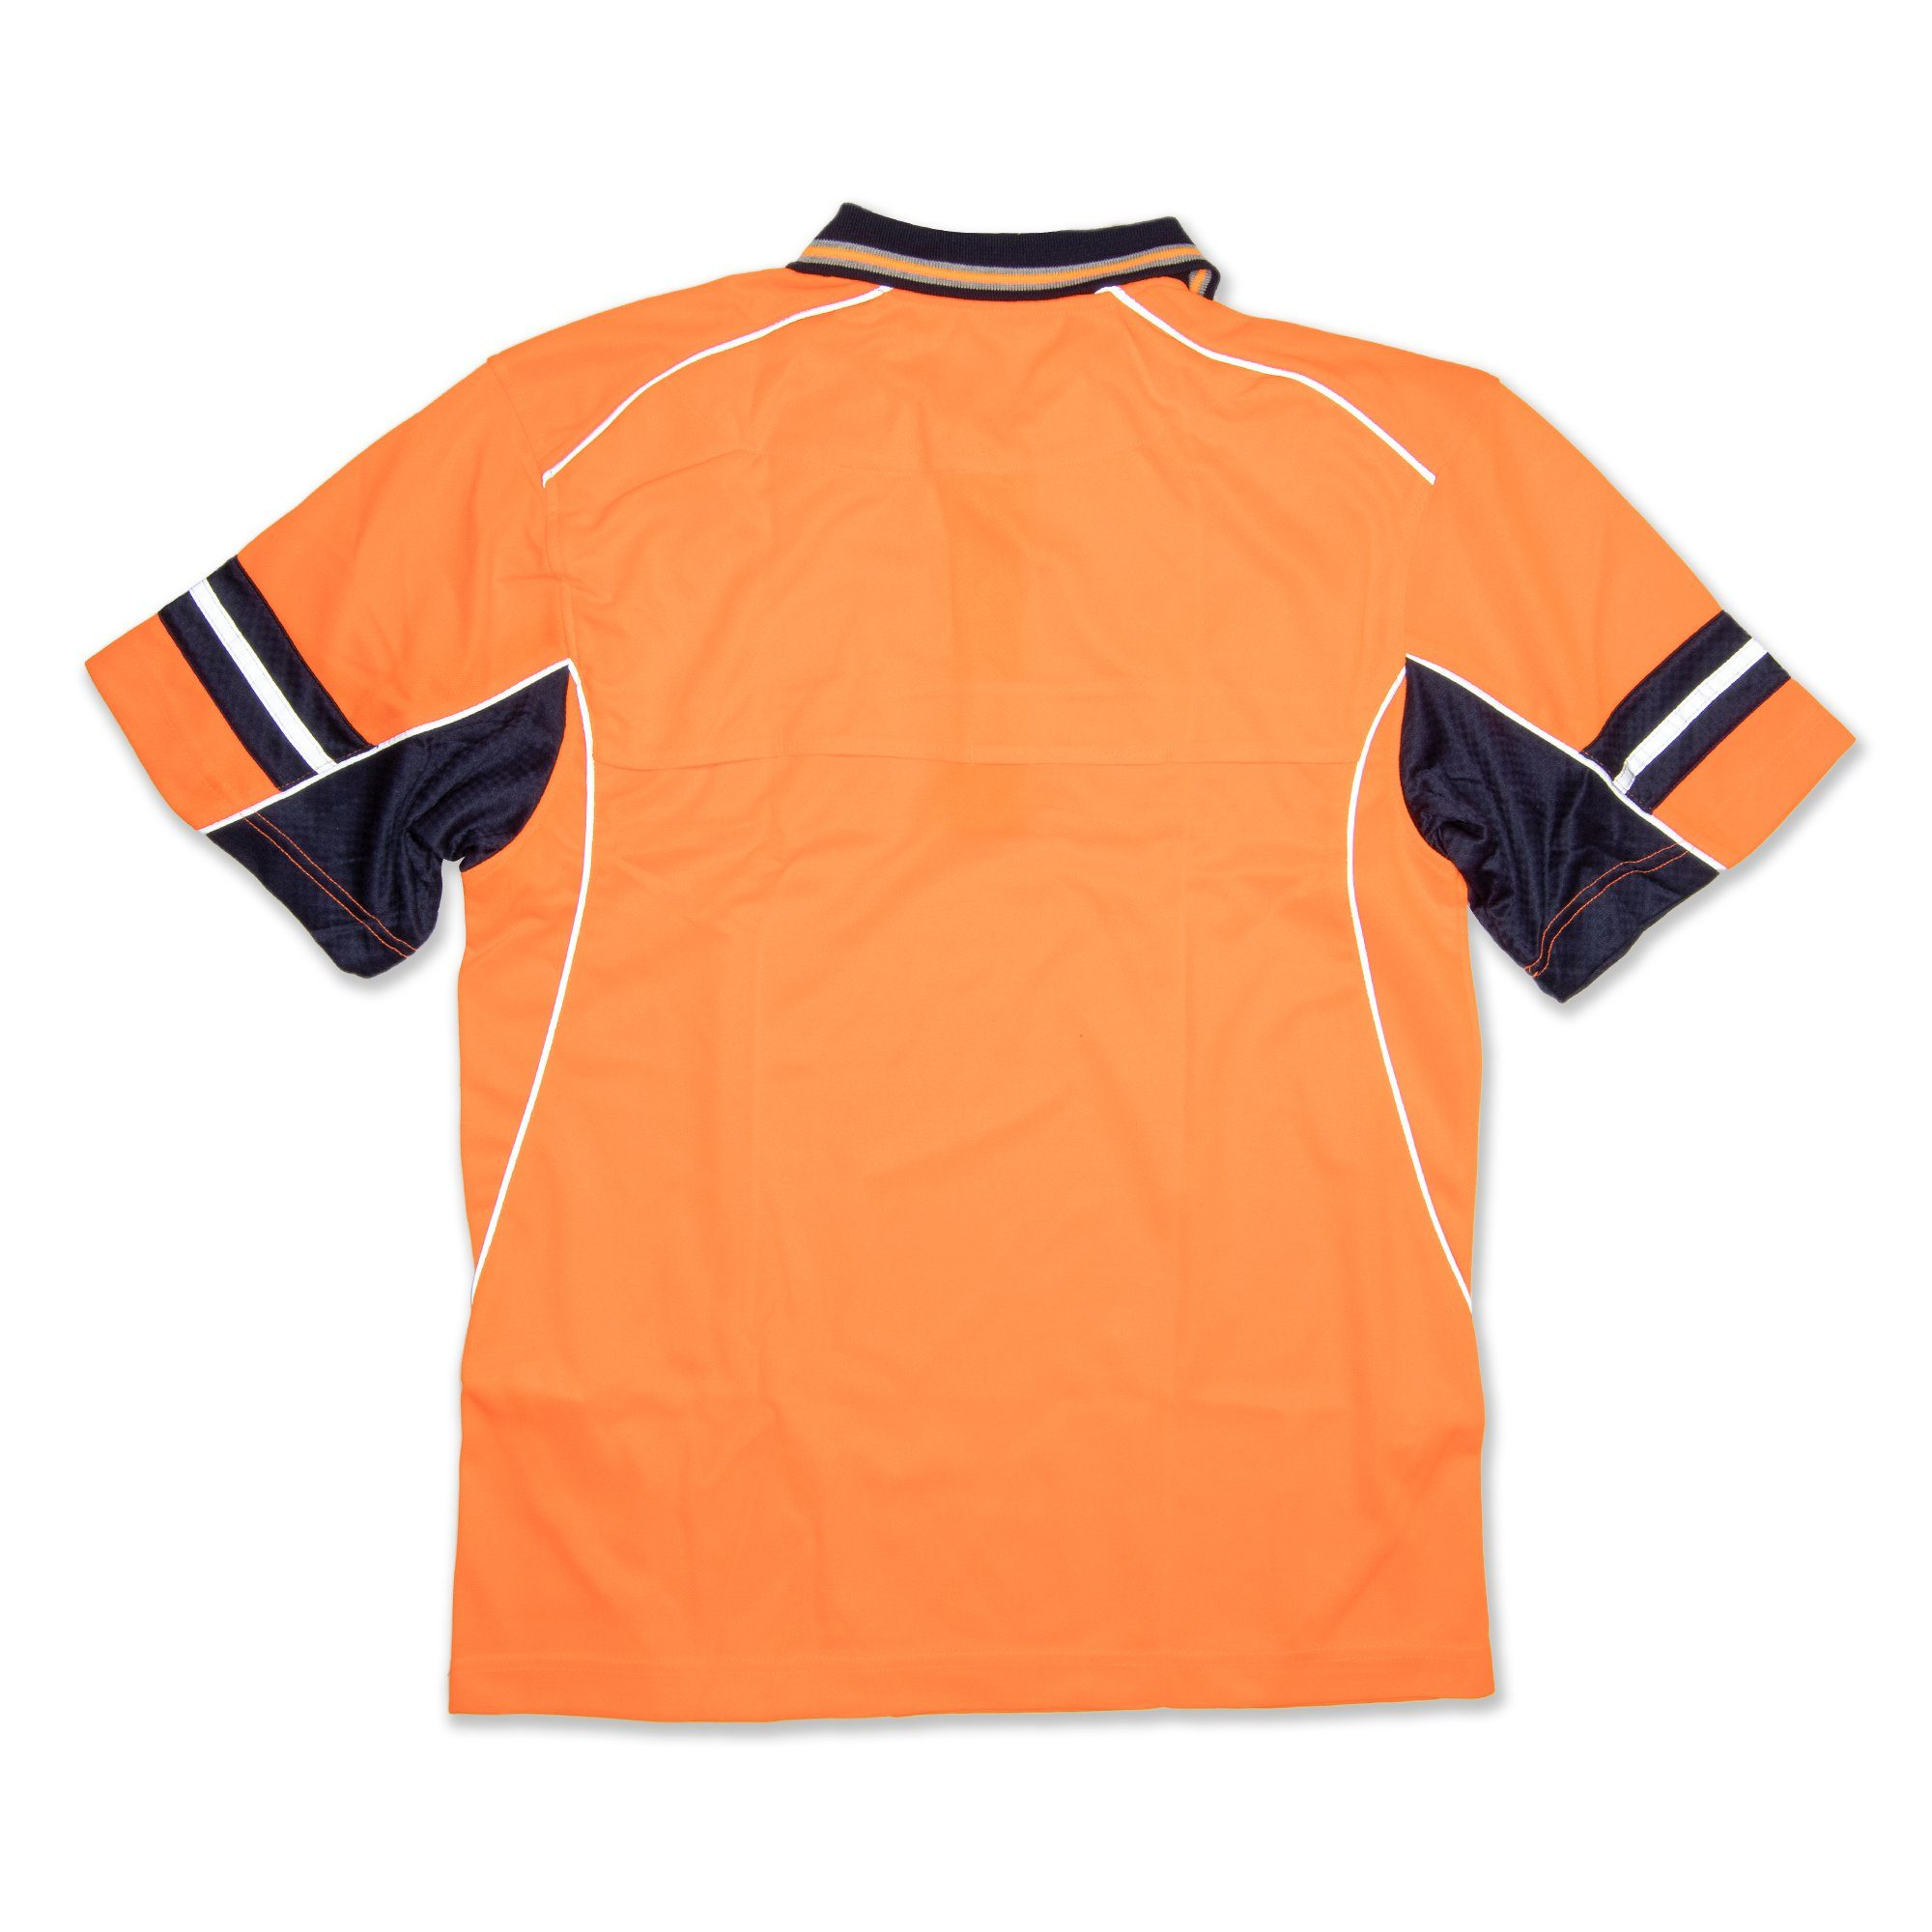 Hard Yakka Kool Gear Hi Vis Short Sleeve Women's Shirt - Orange Workwear Hard Yakka